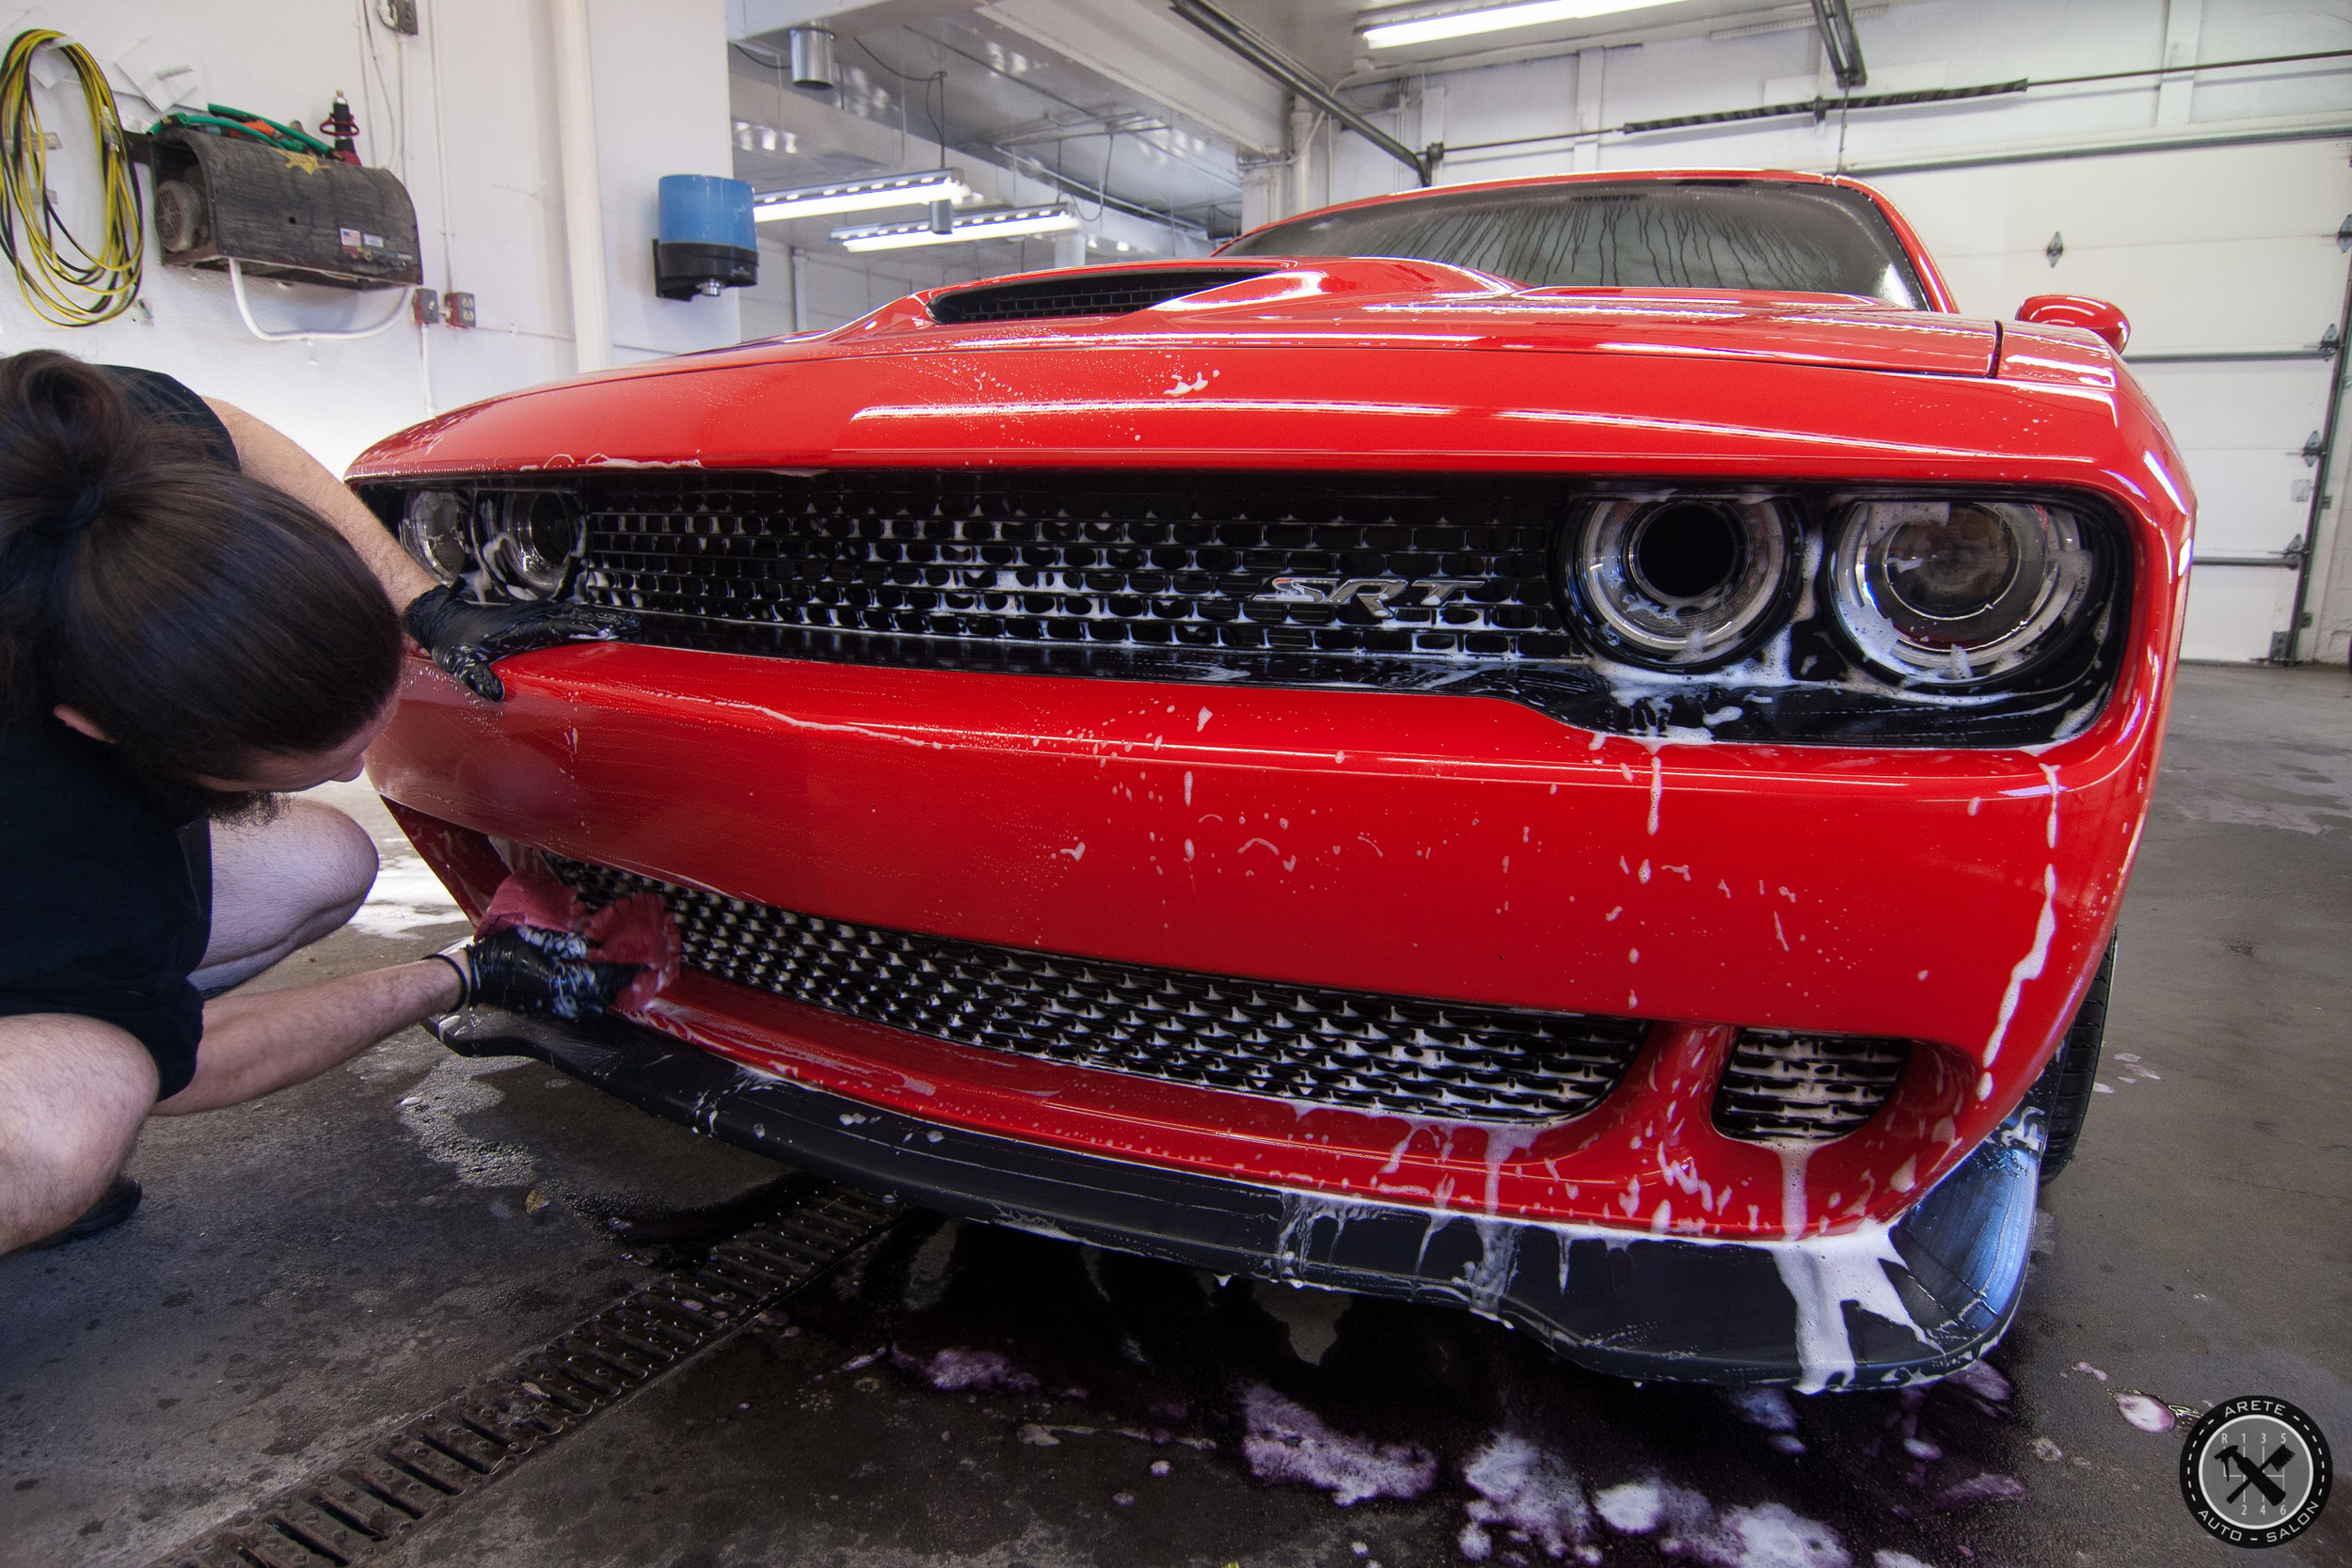 Washing the complex front end of the Hellcat.